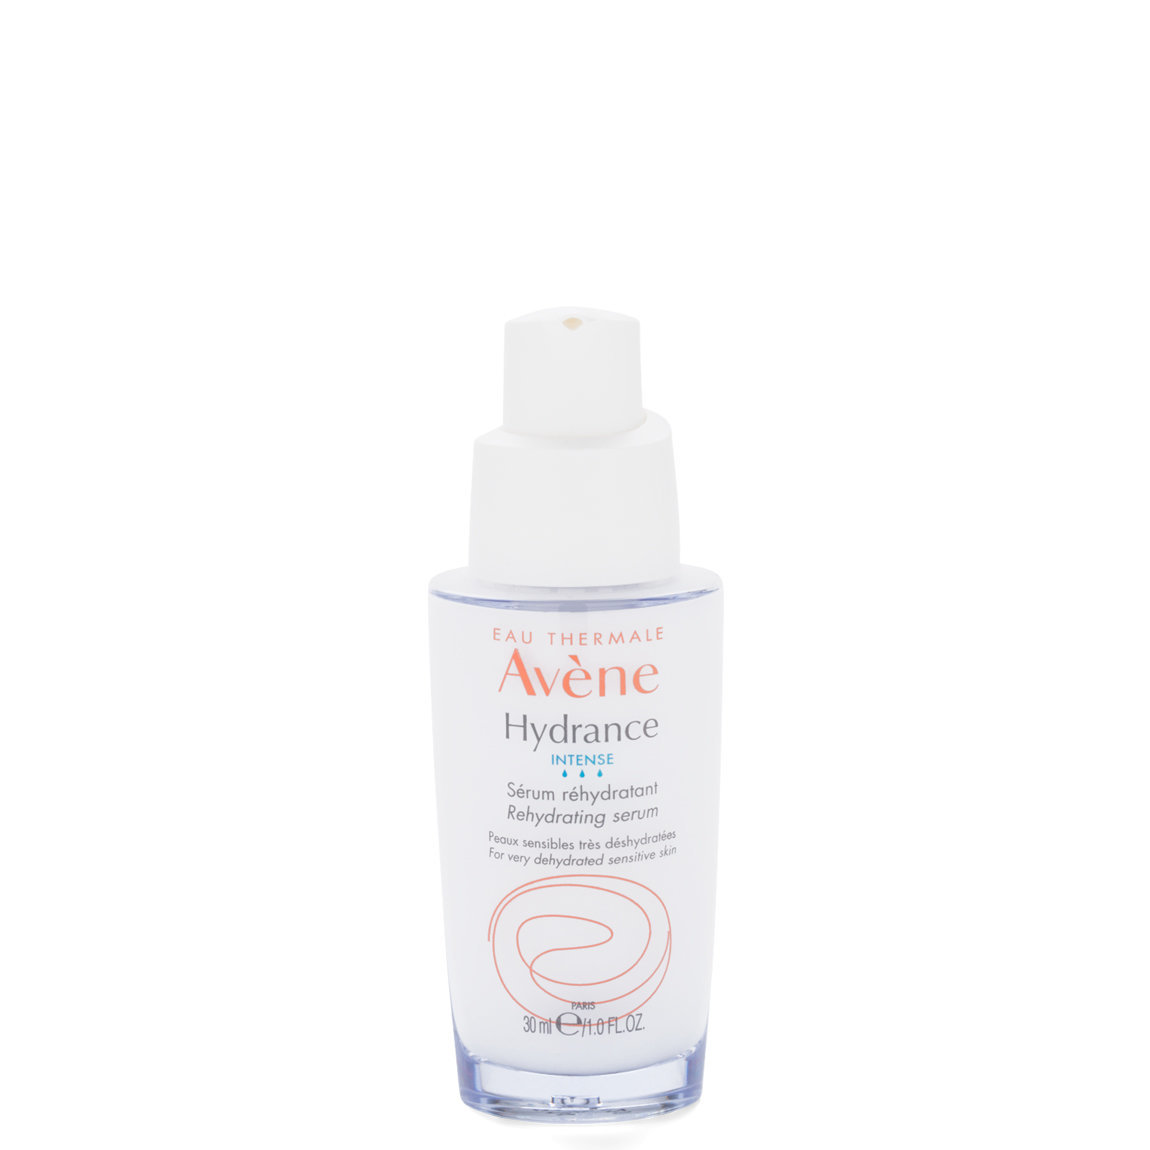 Eau Thermale Avène Hydrance Intense Rehydrating Serum alternative view 1.